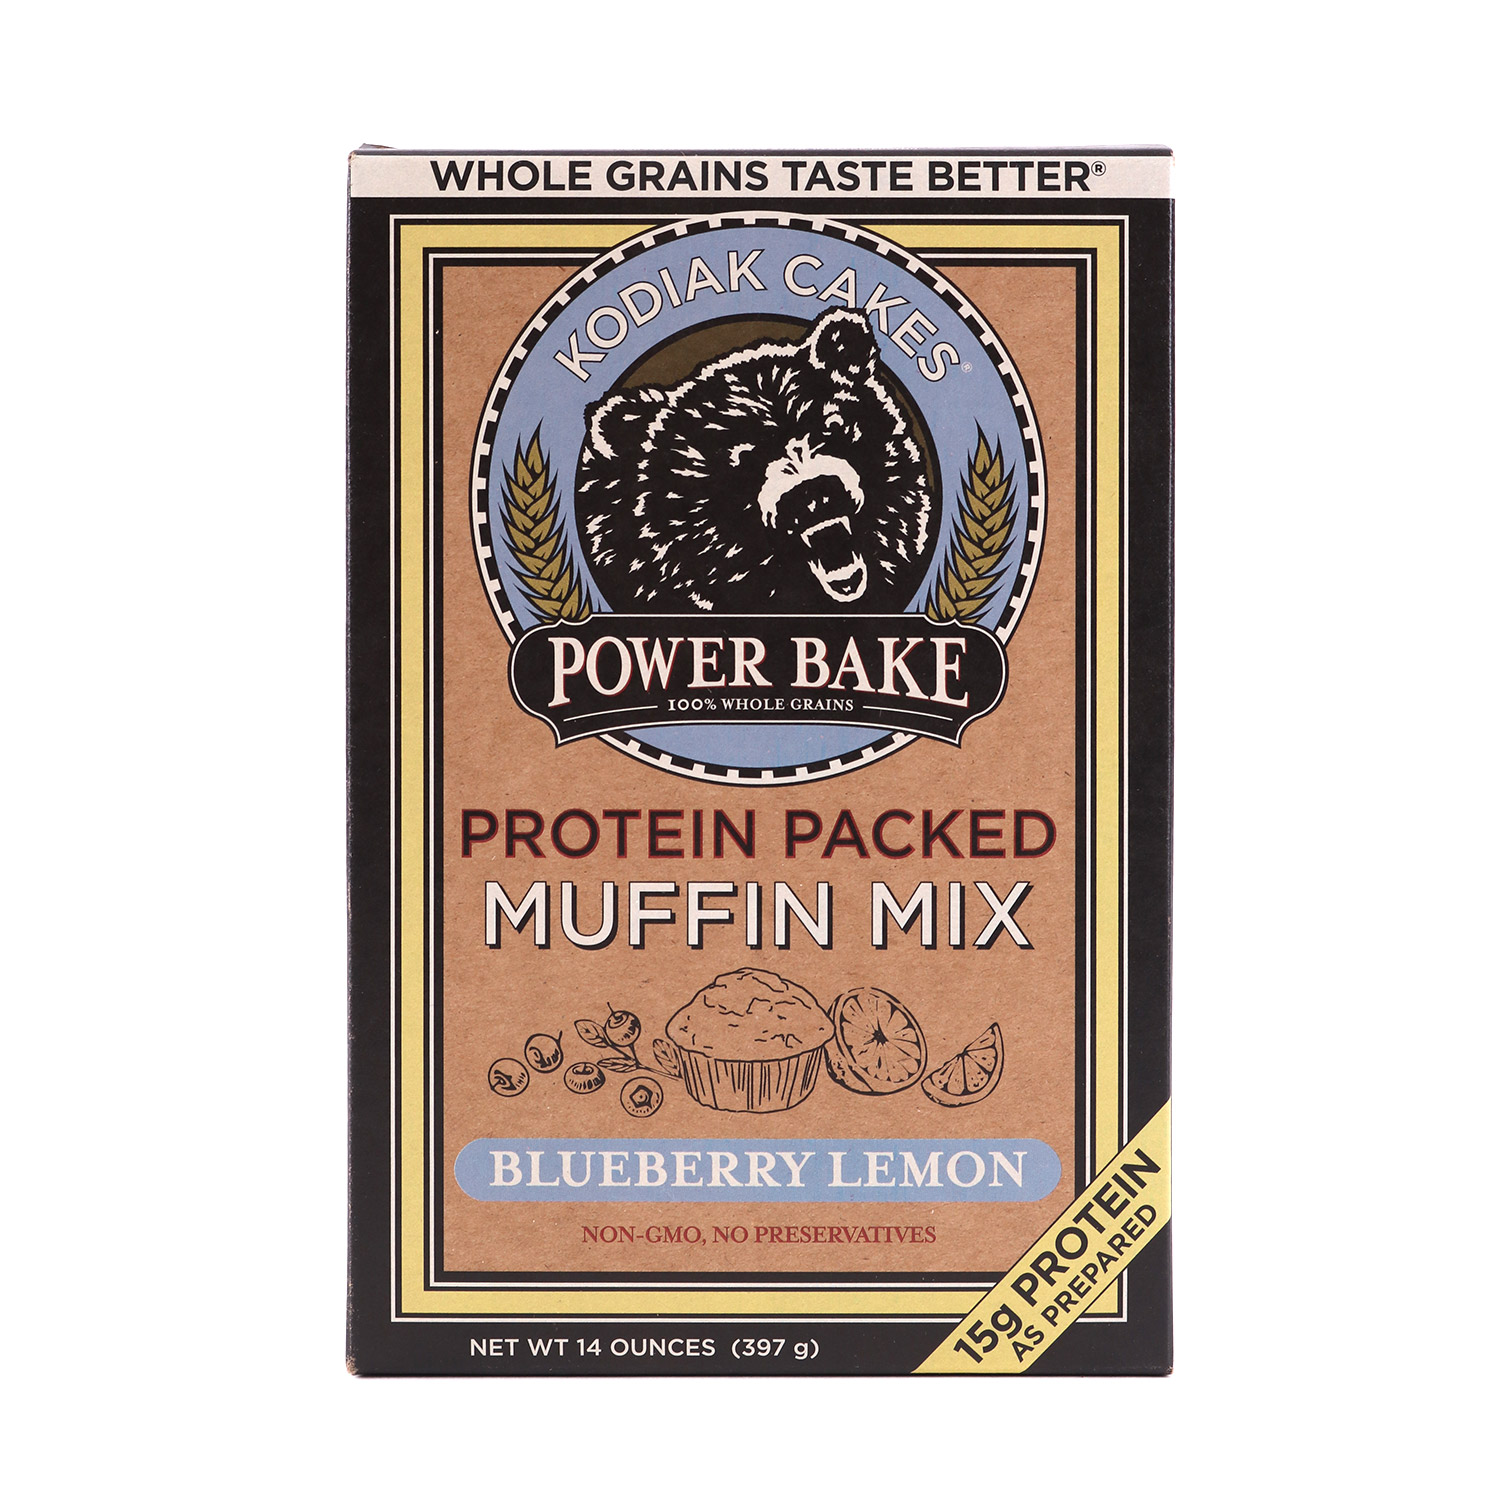 Muffin Mix, Blueberry Lemon Protein